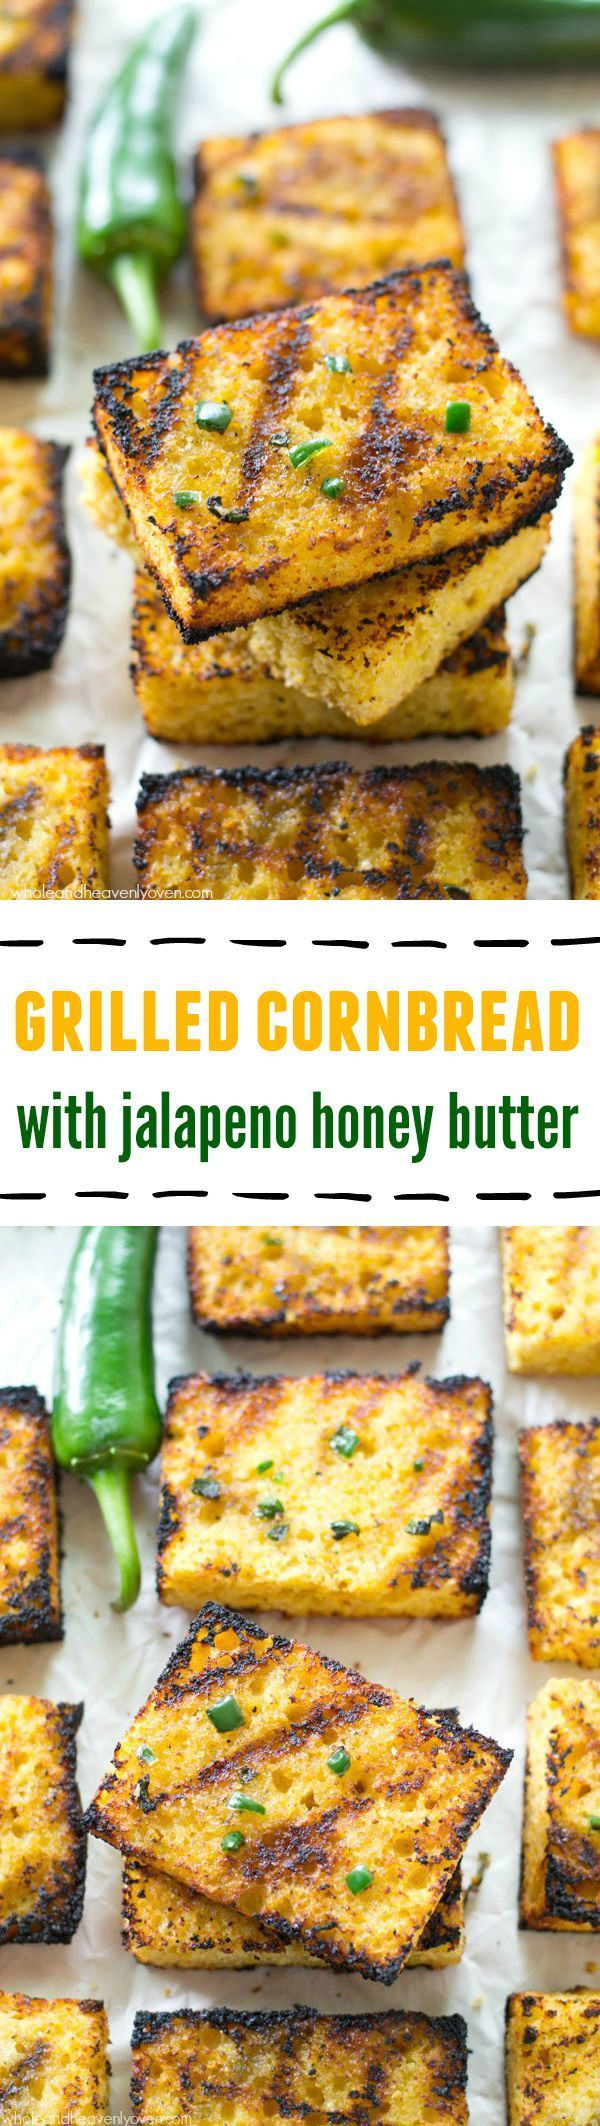 Grilled Cornbread with Jalapeno Honey Butter - Soft, irresistible homemade cornbread squares are slathered up with a kickin' jalapeno honey butter and then quickly cooked on the grill to crisp, buttery heaven!